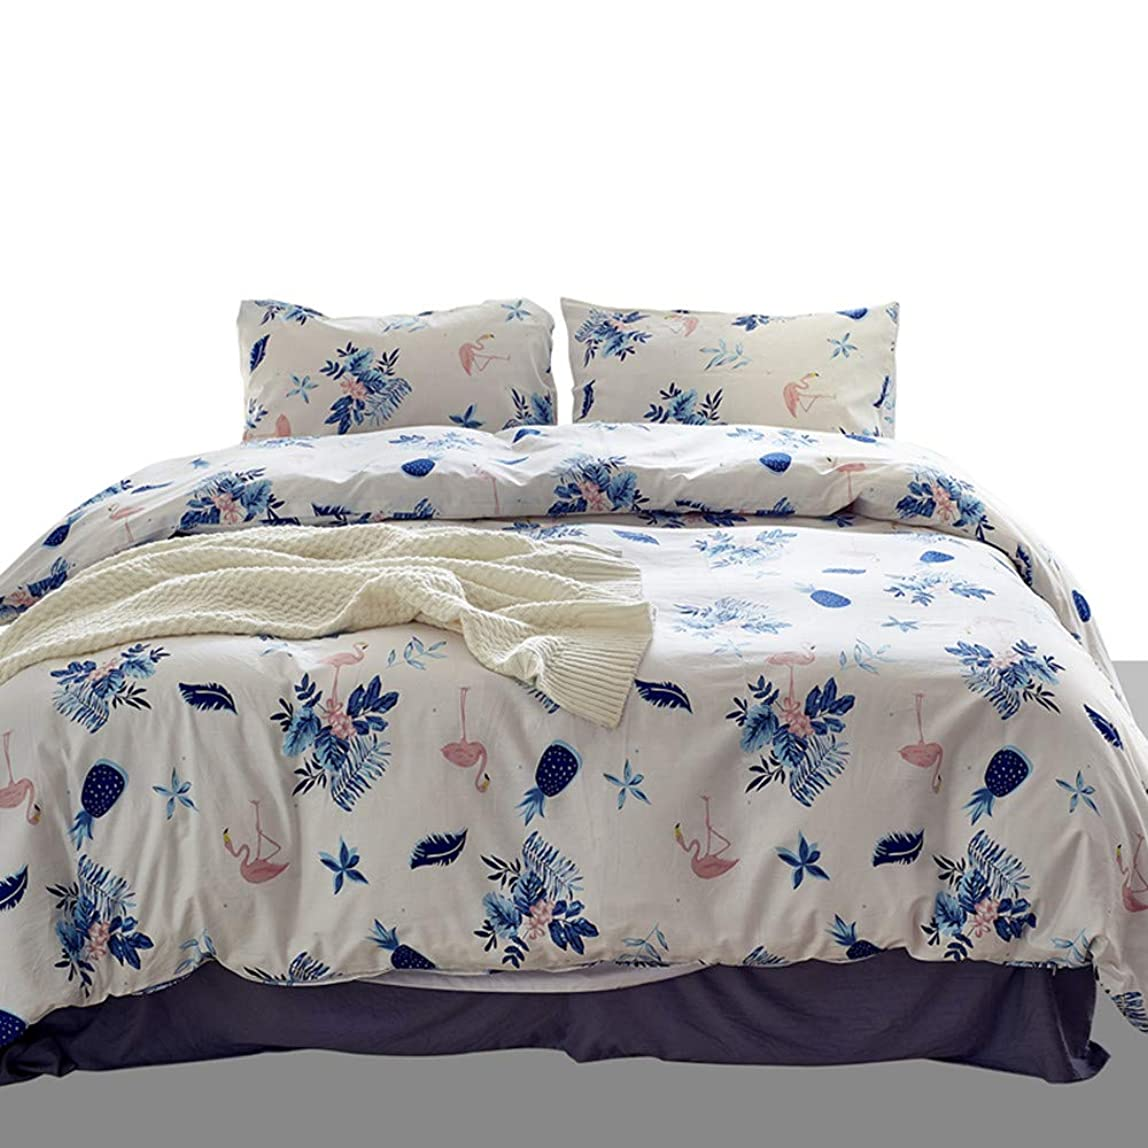 Yasosing Home Flamingo Bedding 3 Piece Duvet Cover Set Flamingo Birds Leaves Printed 100% Cotton Modern Bedding Cover Sets with Zipper Closure Ties 1 Duvet Cover 2 Pillowcases White King rygneqj679055